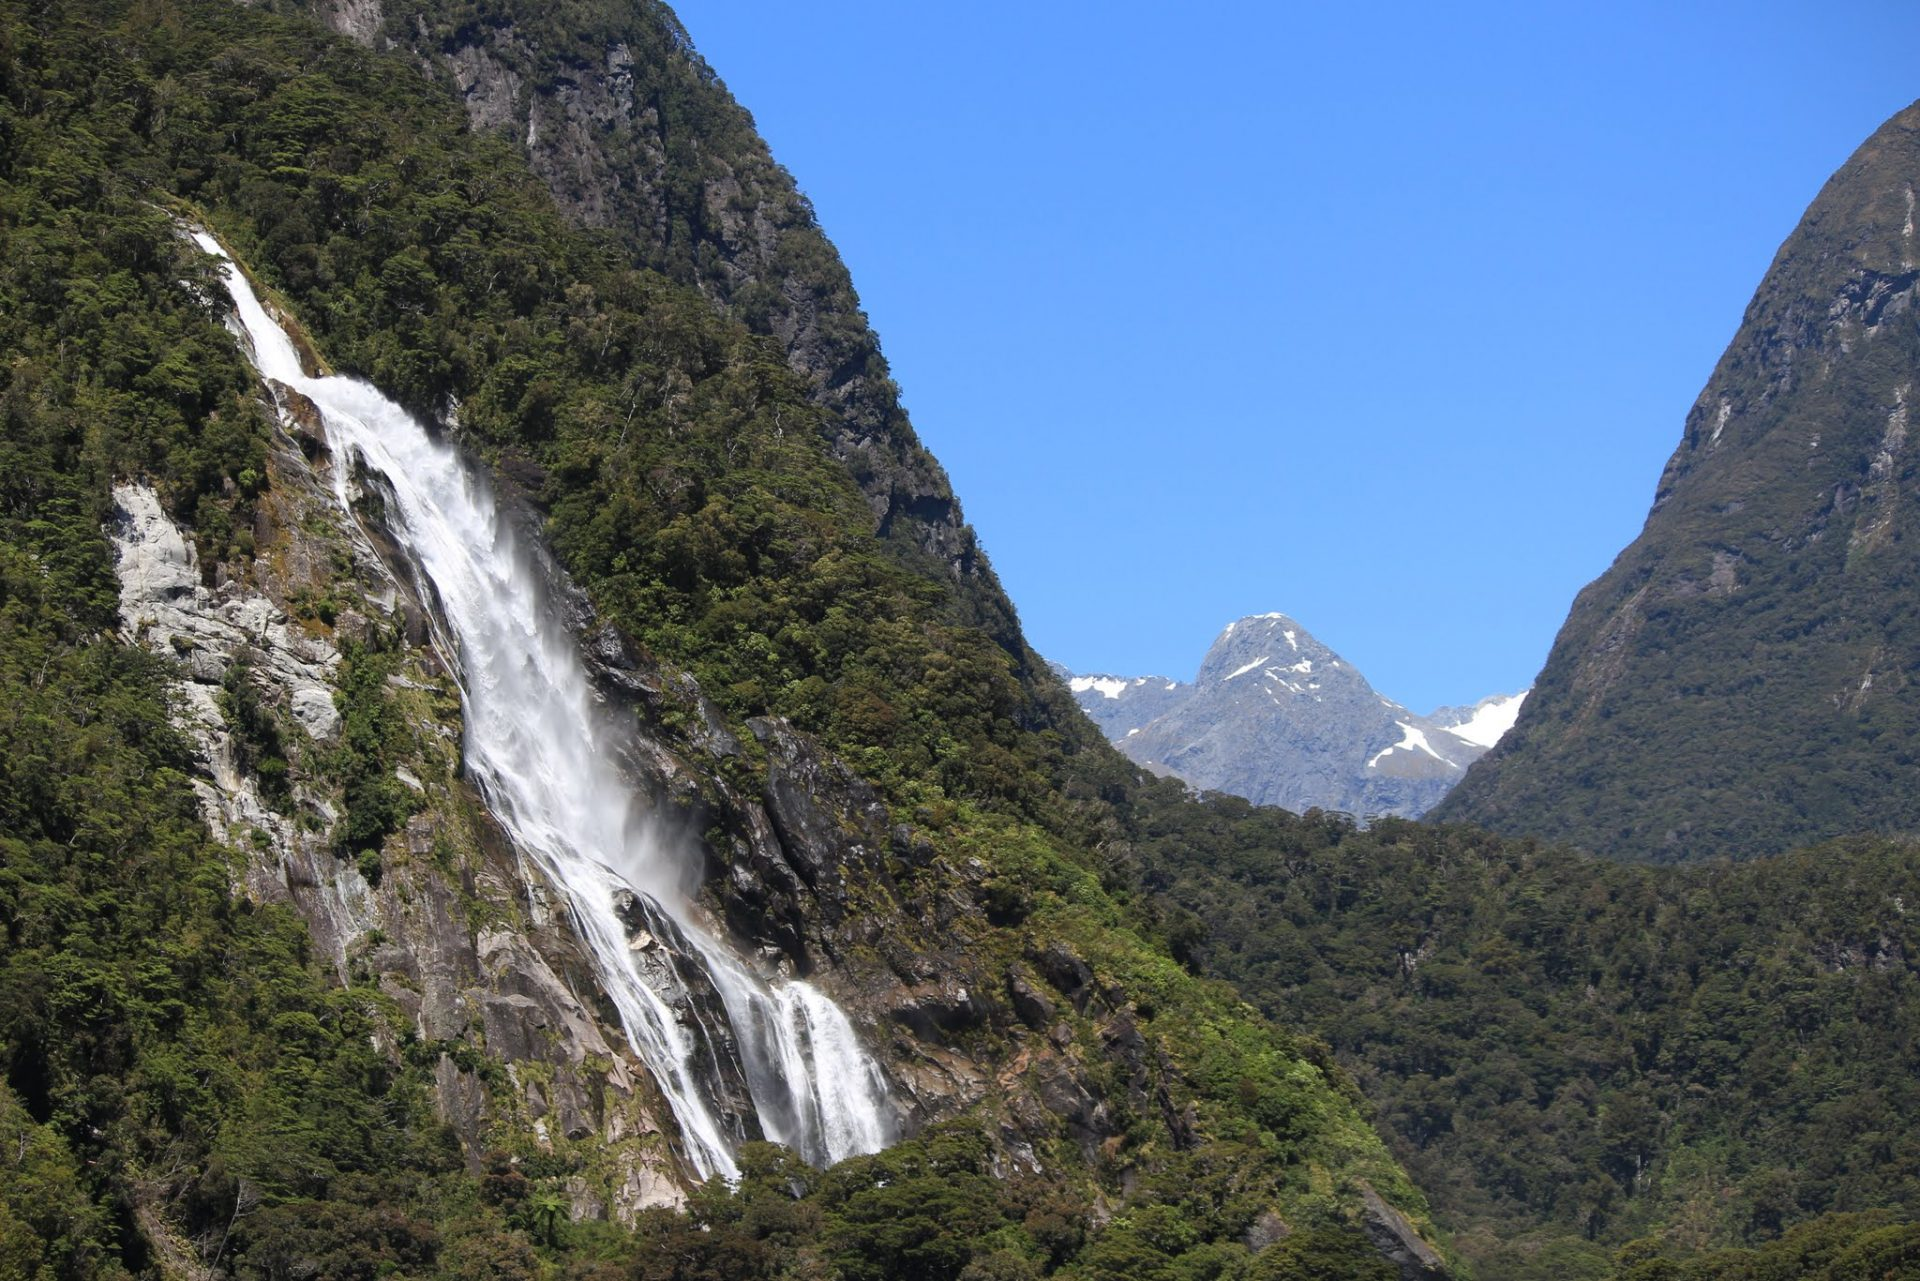 waterfalls mountains new zealand - Travel Contests: September 23rd, 2020 - New Zealand, Sicily, Paris, & more